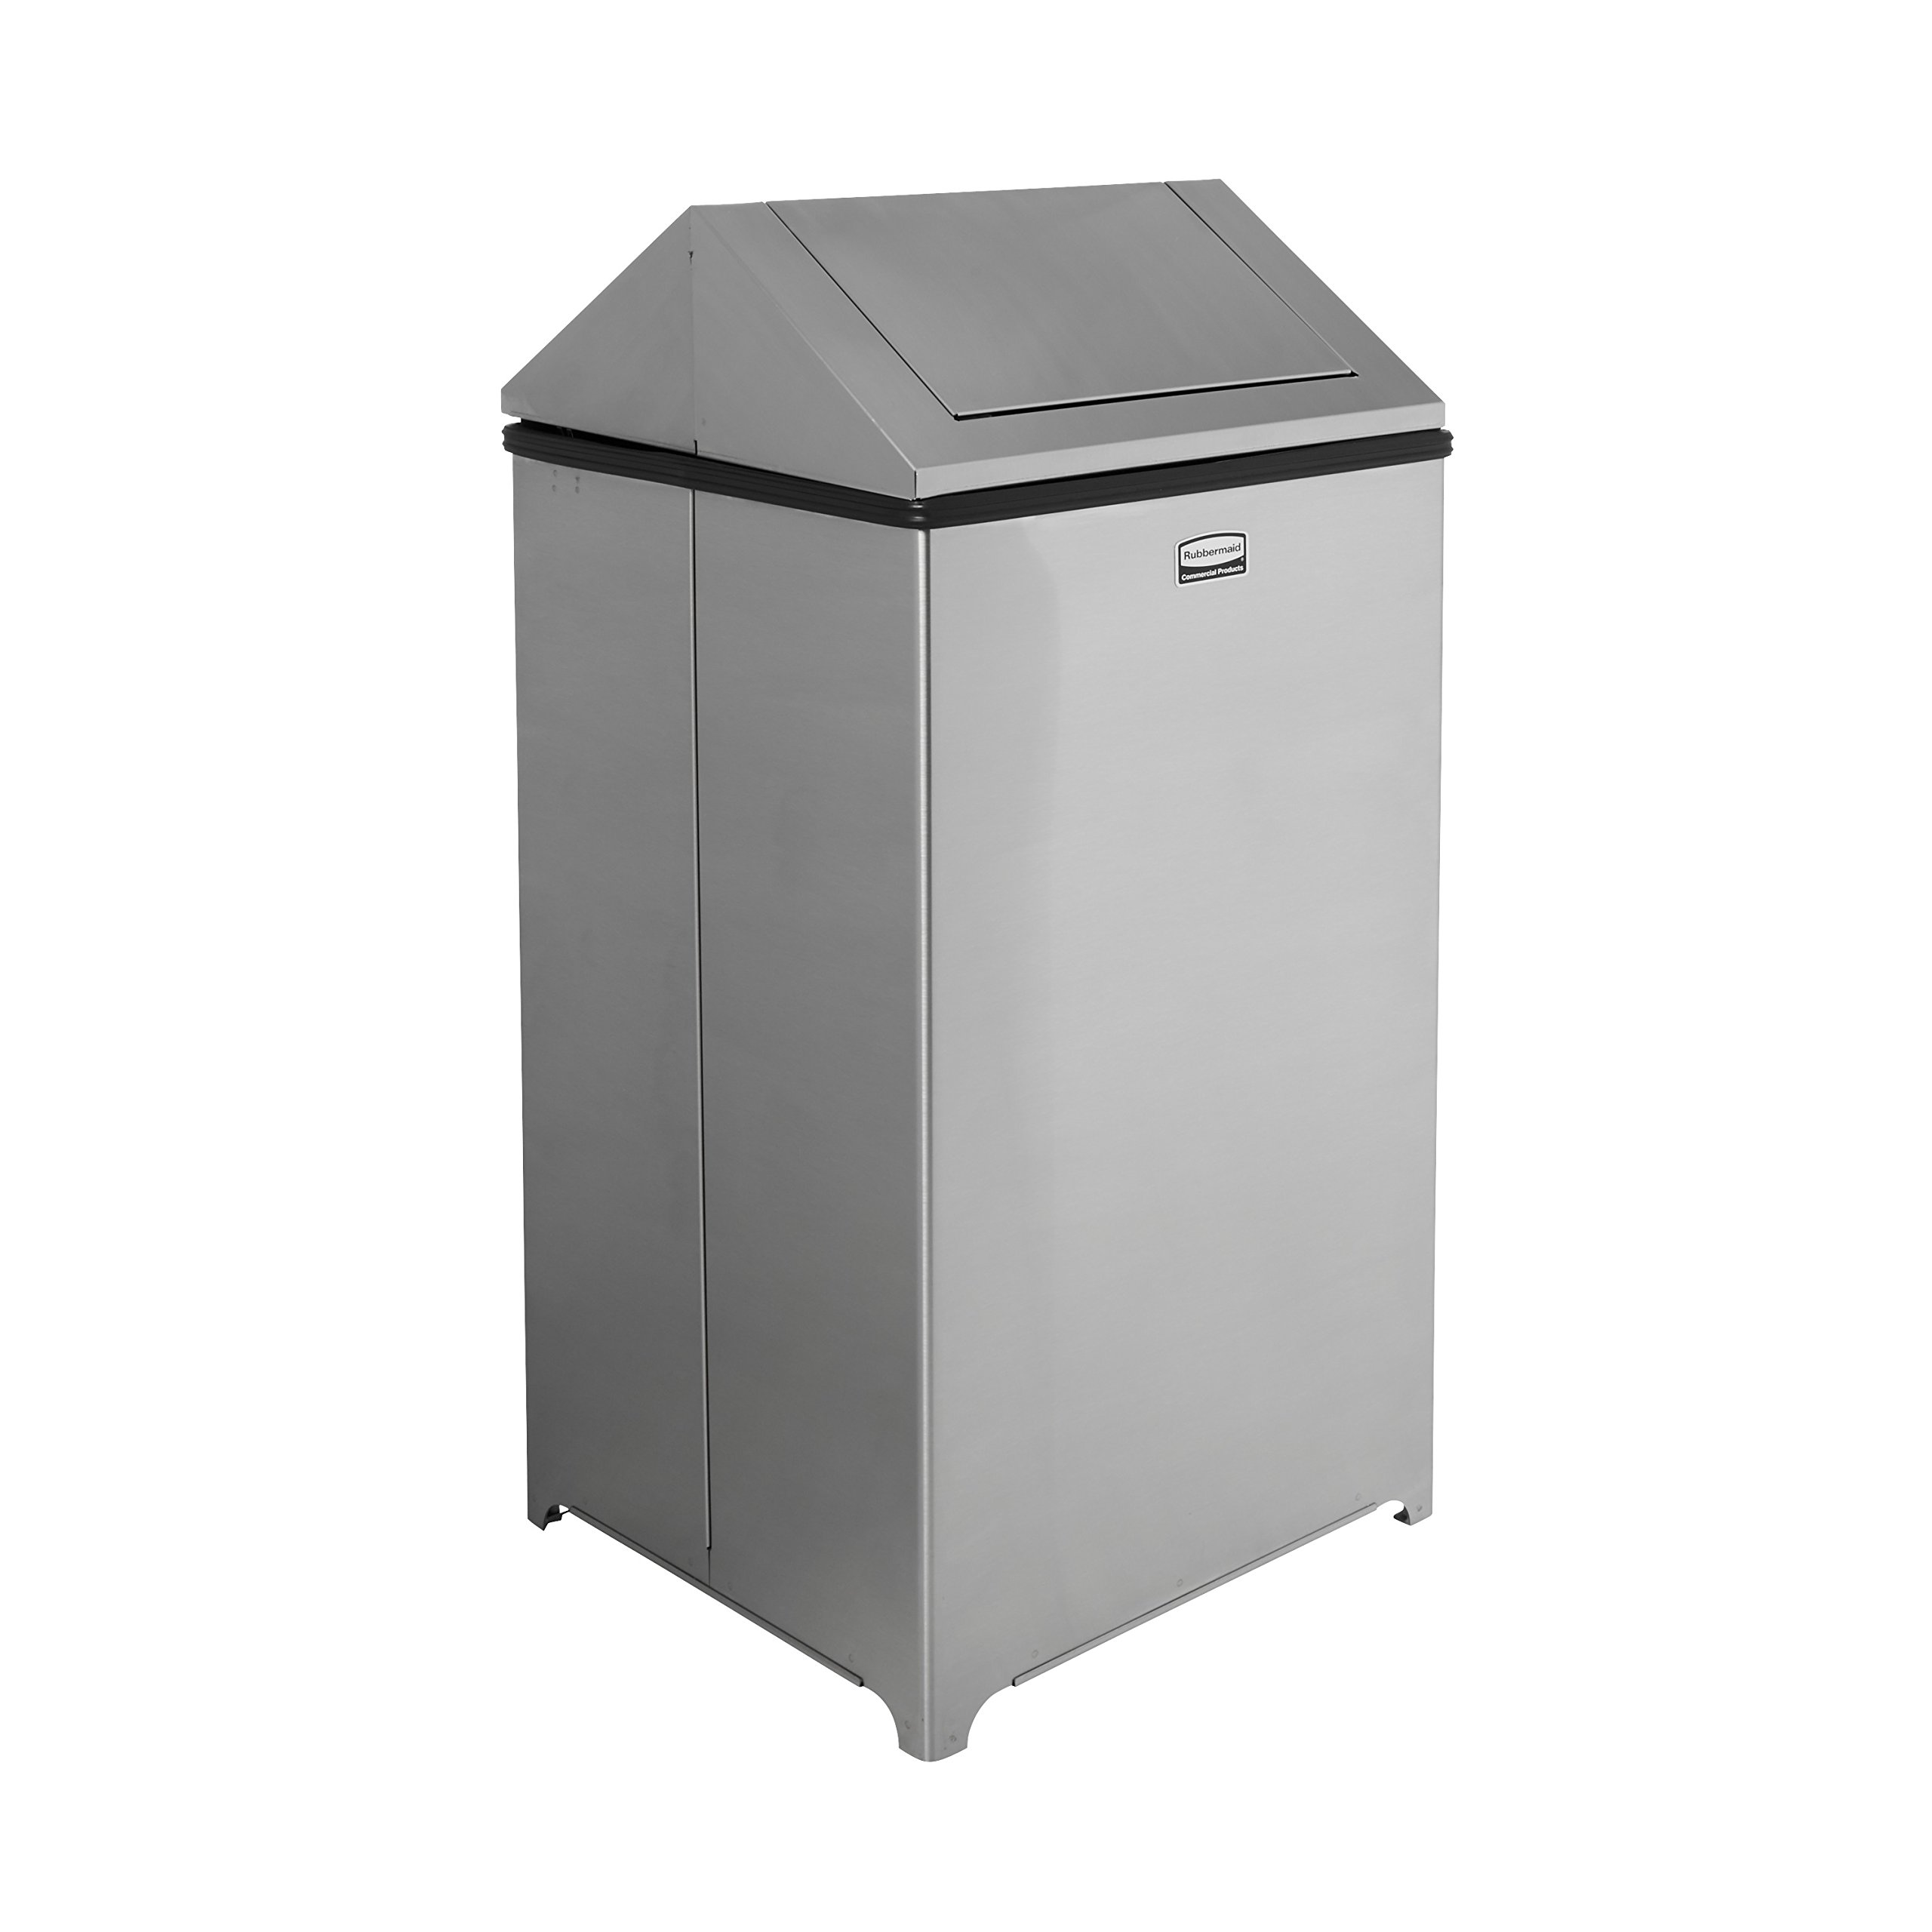 Rubbermaid Commercial WasteMaster Trash Can, 40 Gallon, Stainless Steel, FGT1940SSPL